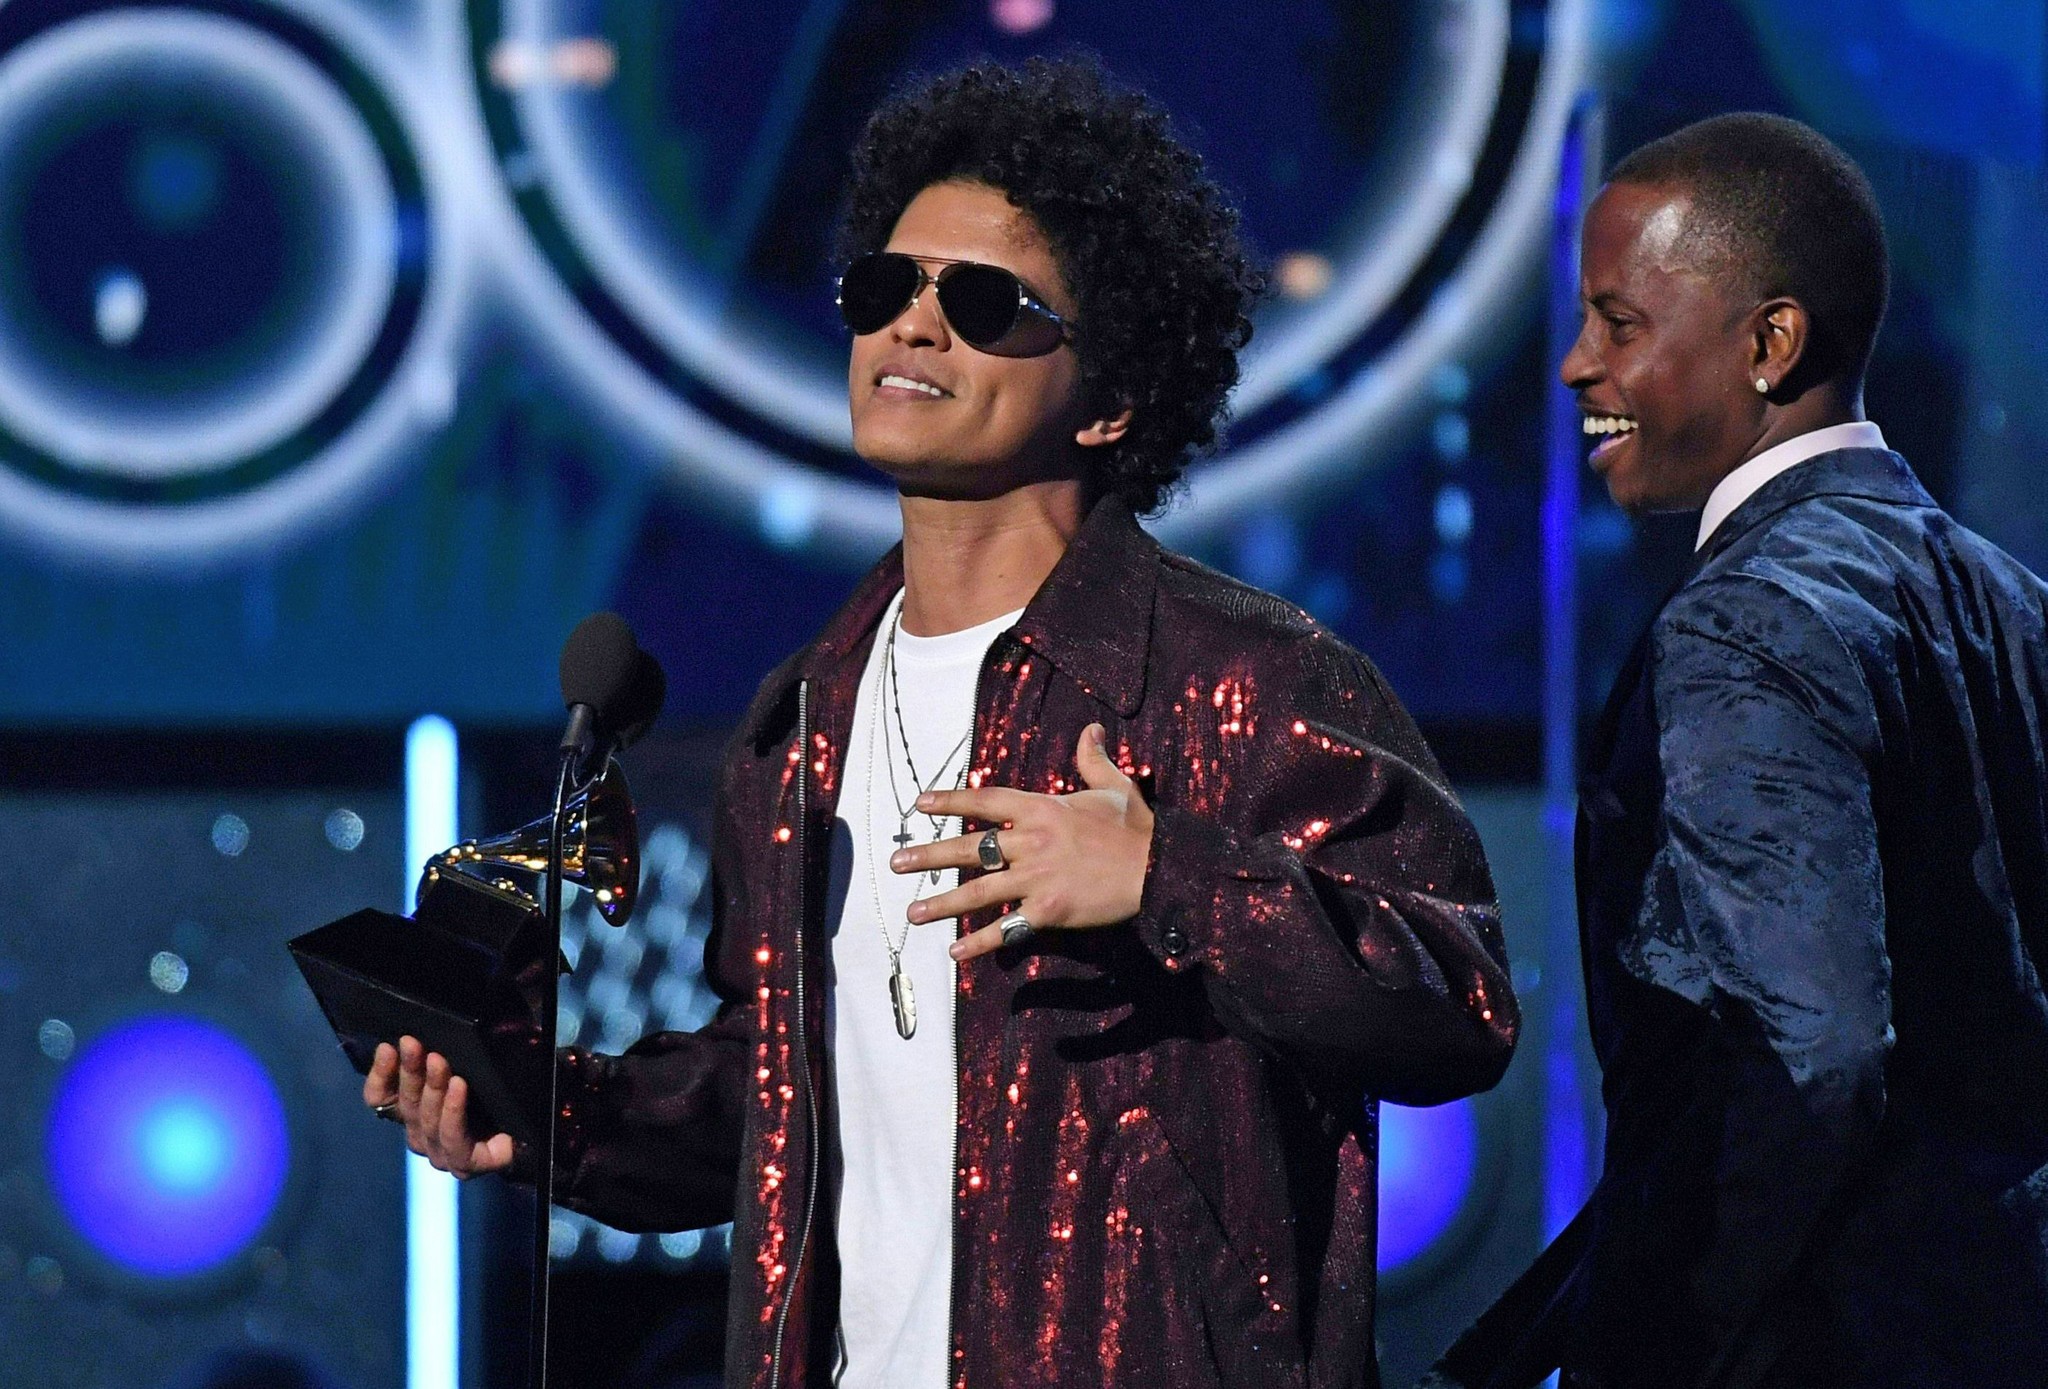 Bruno Mars receives the Grammy for record of the year during the 60th Grammy Awards show on Jan. 28, 2018. (Timothy A. Clary / AFP / Getty Images)